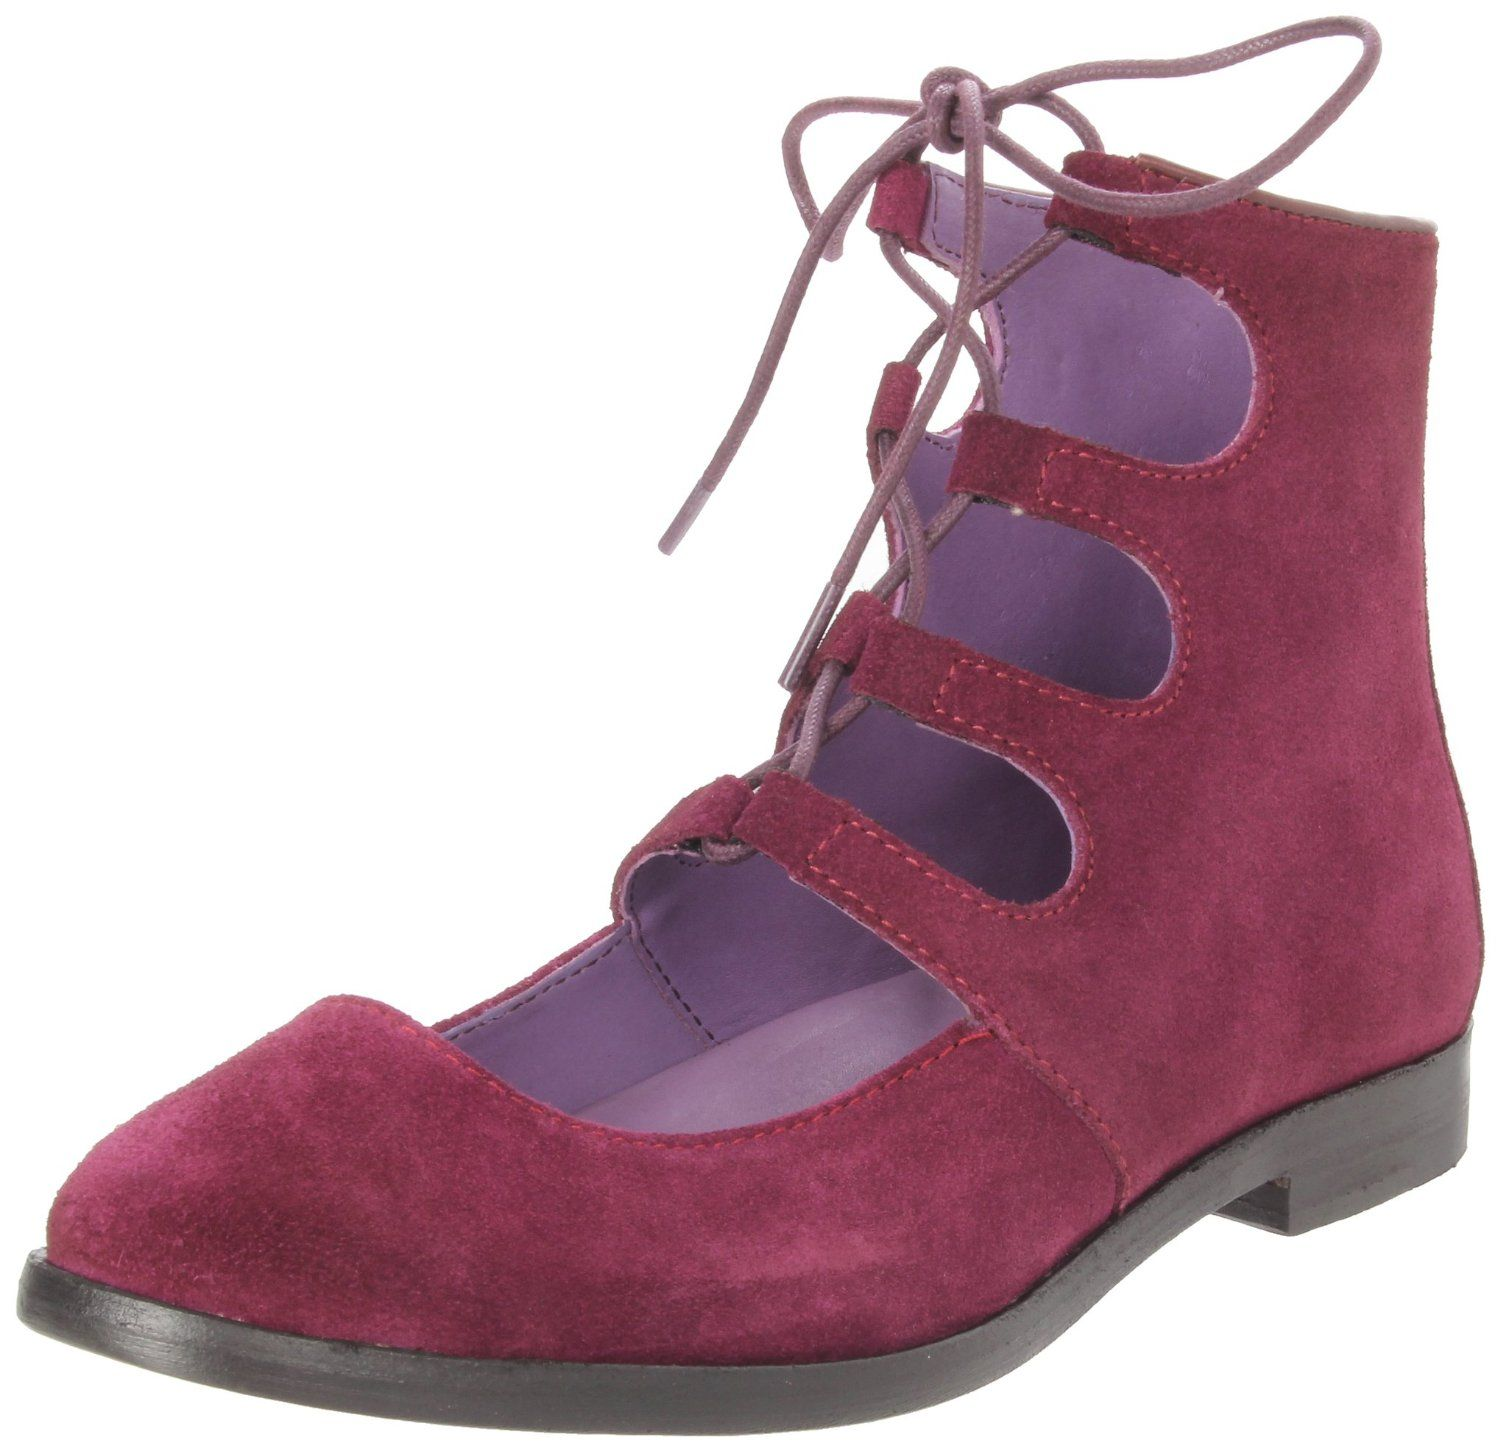 Anna Sui for Hush Puppies Women's Ghillie Lace